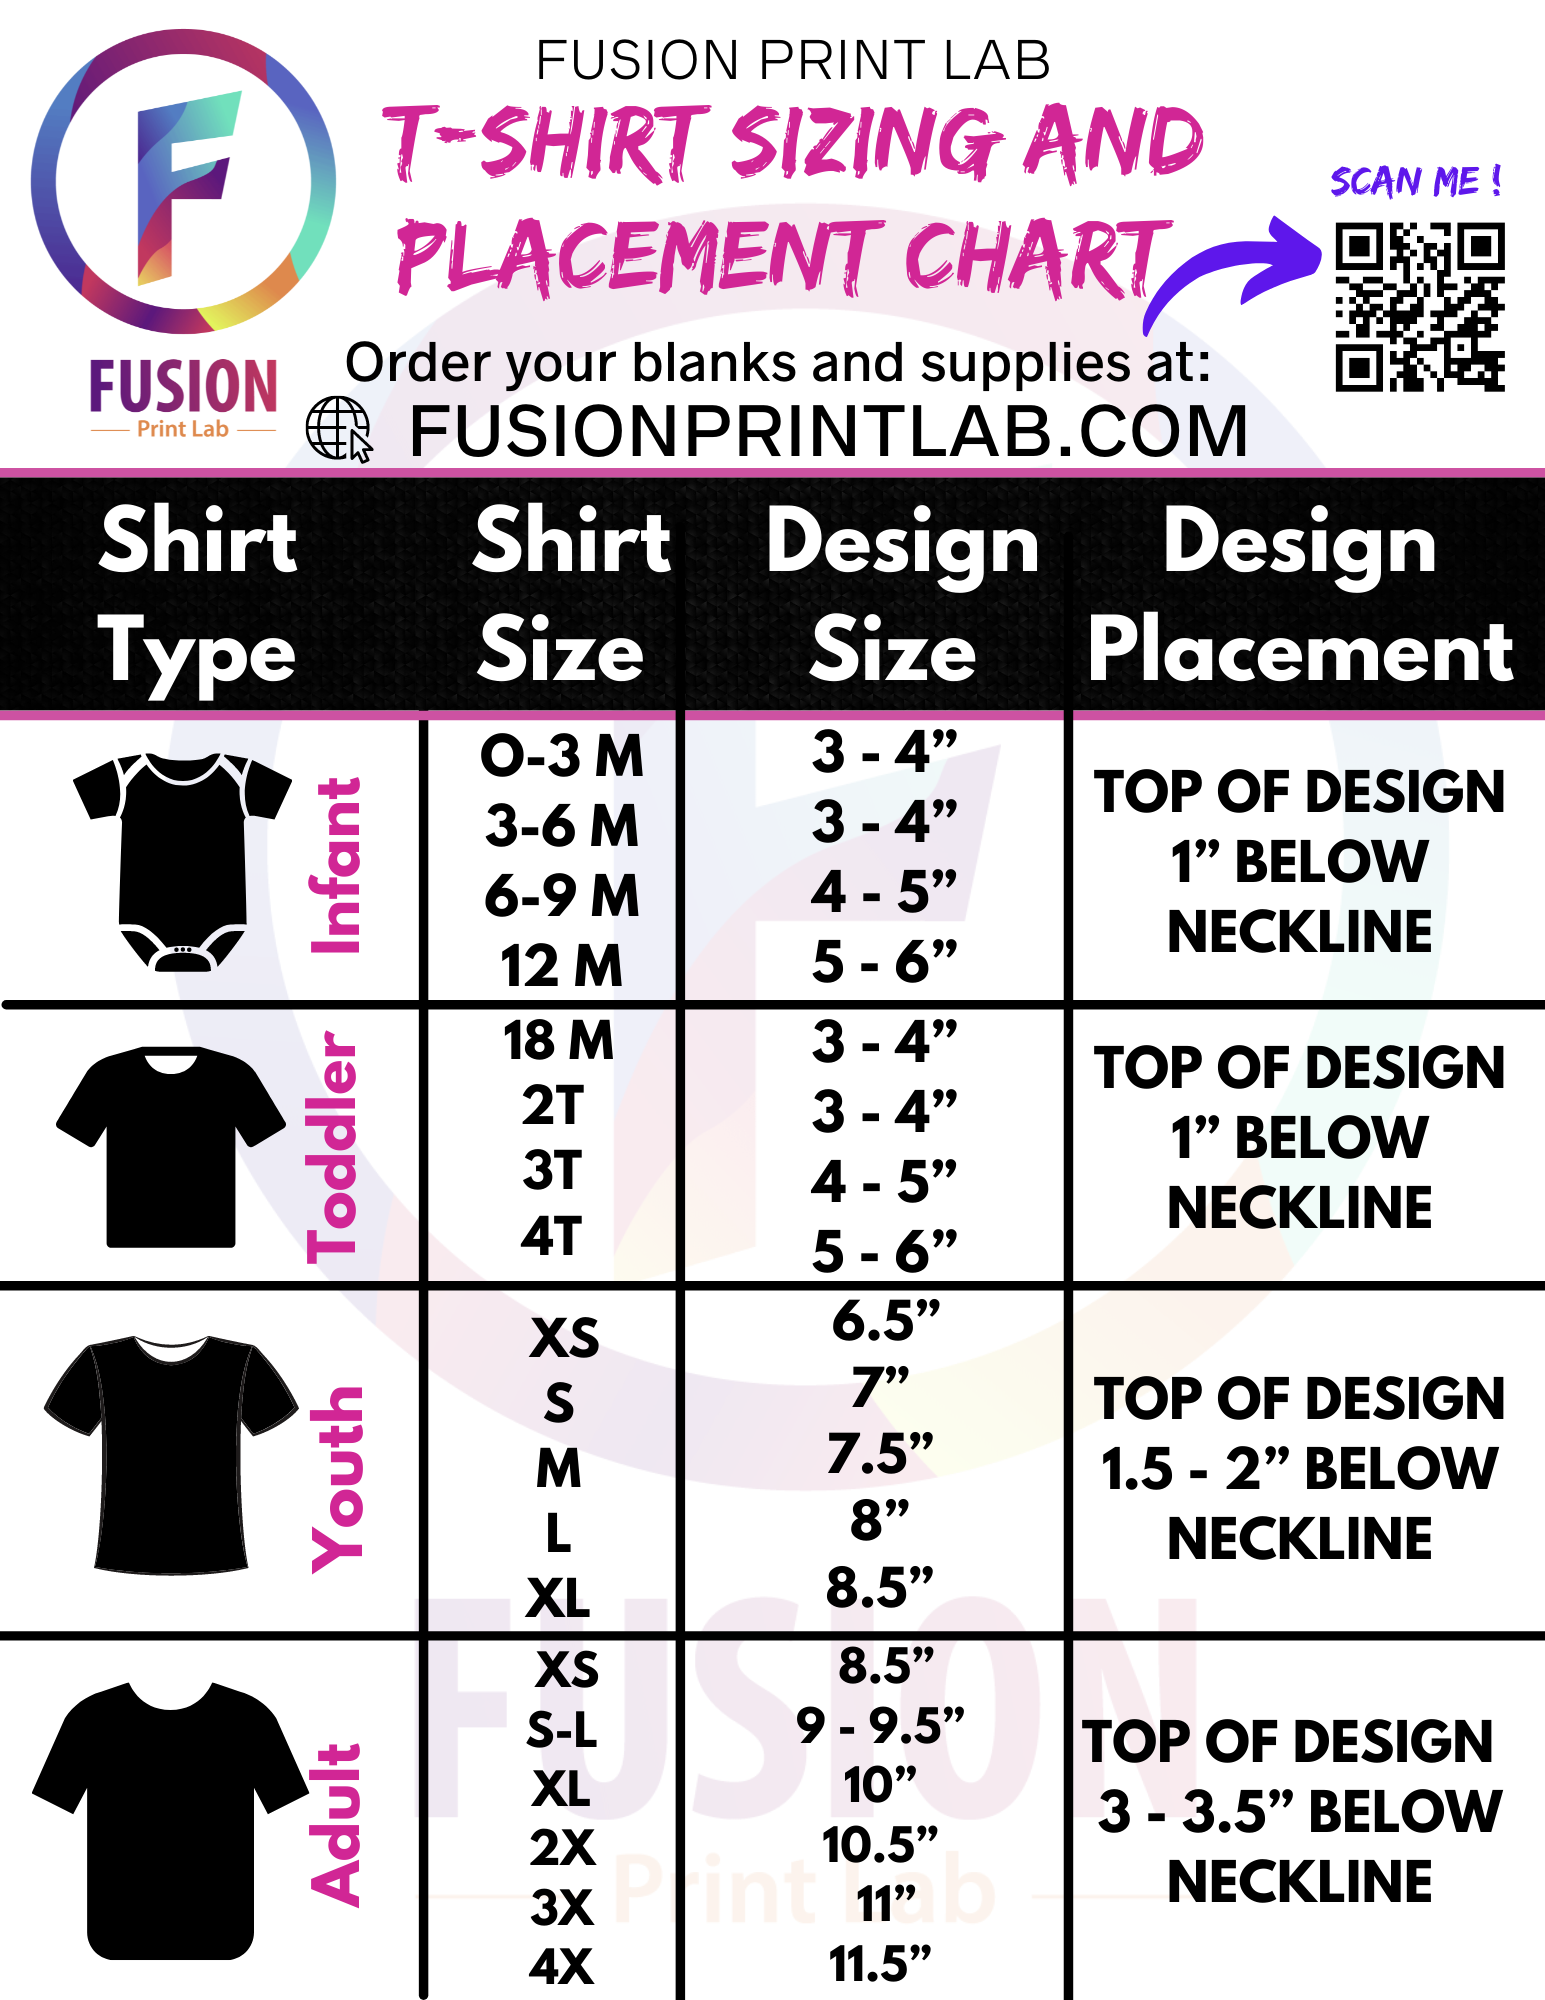 T-Shirt Sizing and Placement Chart